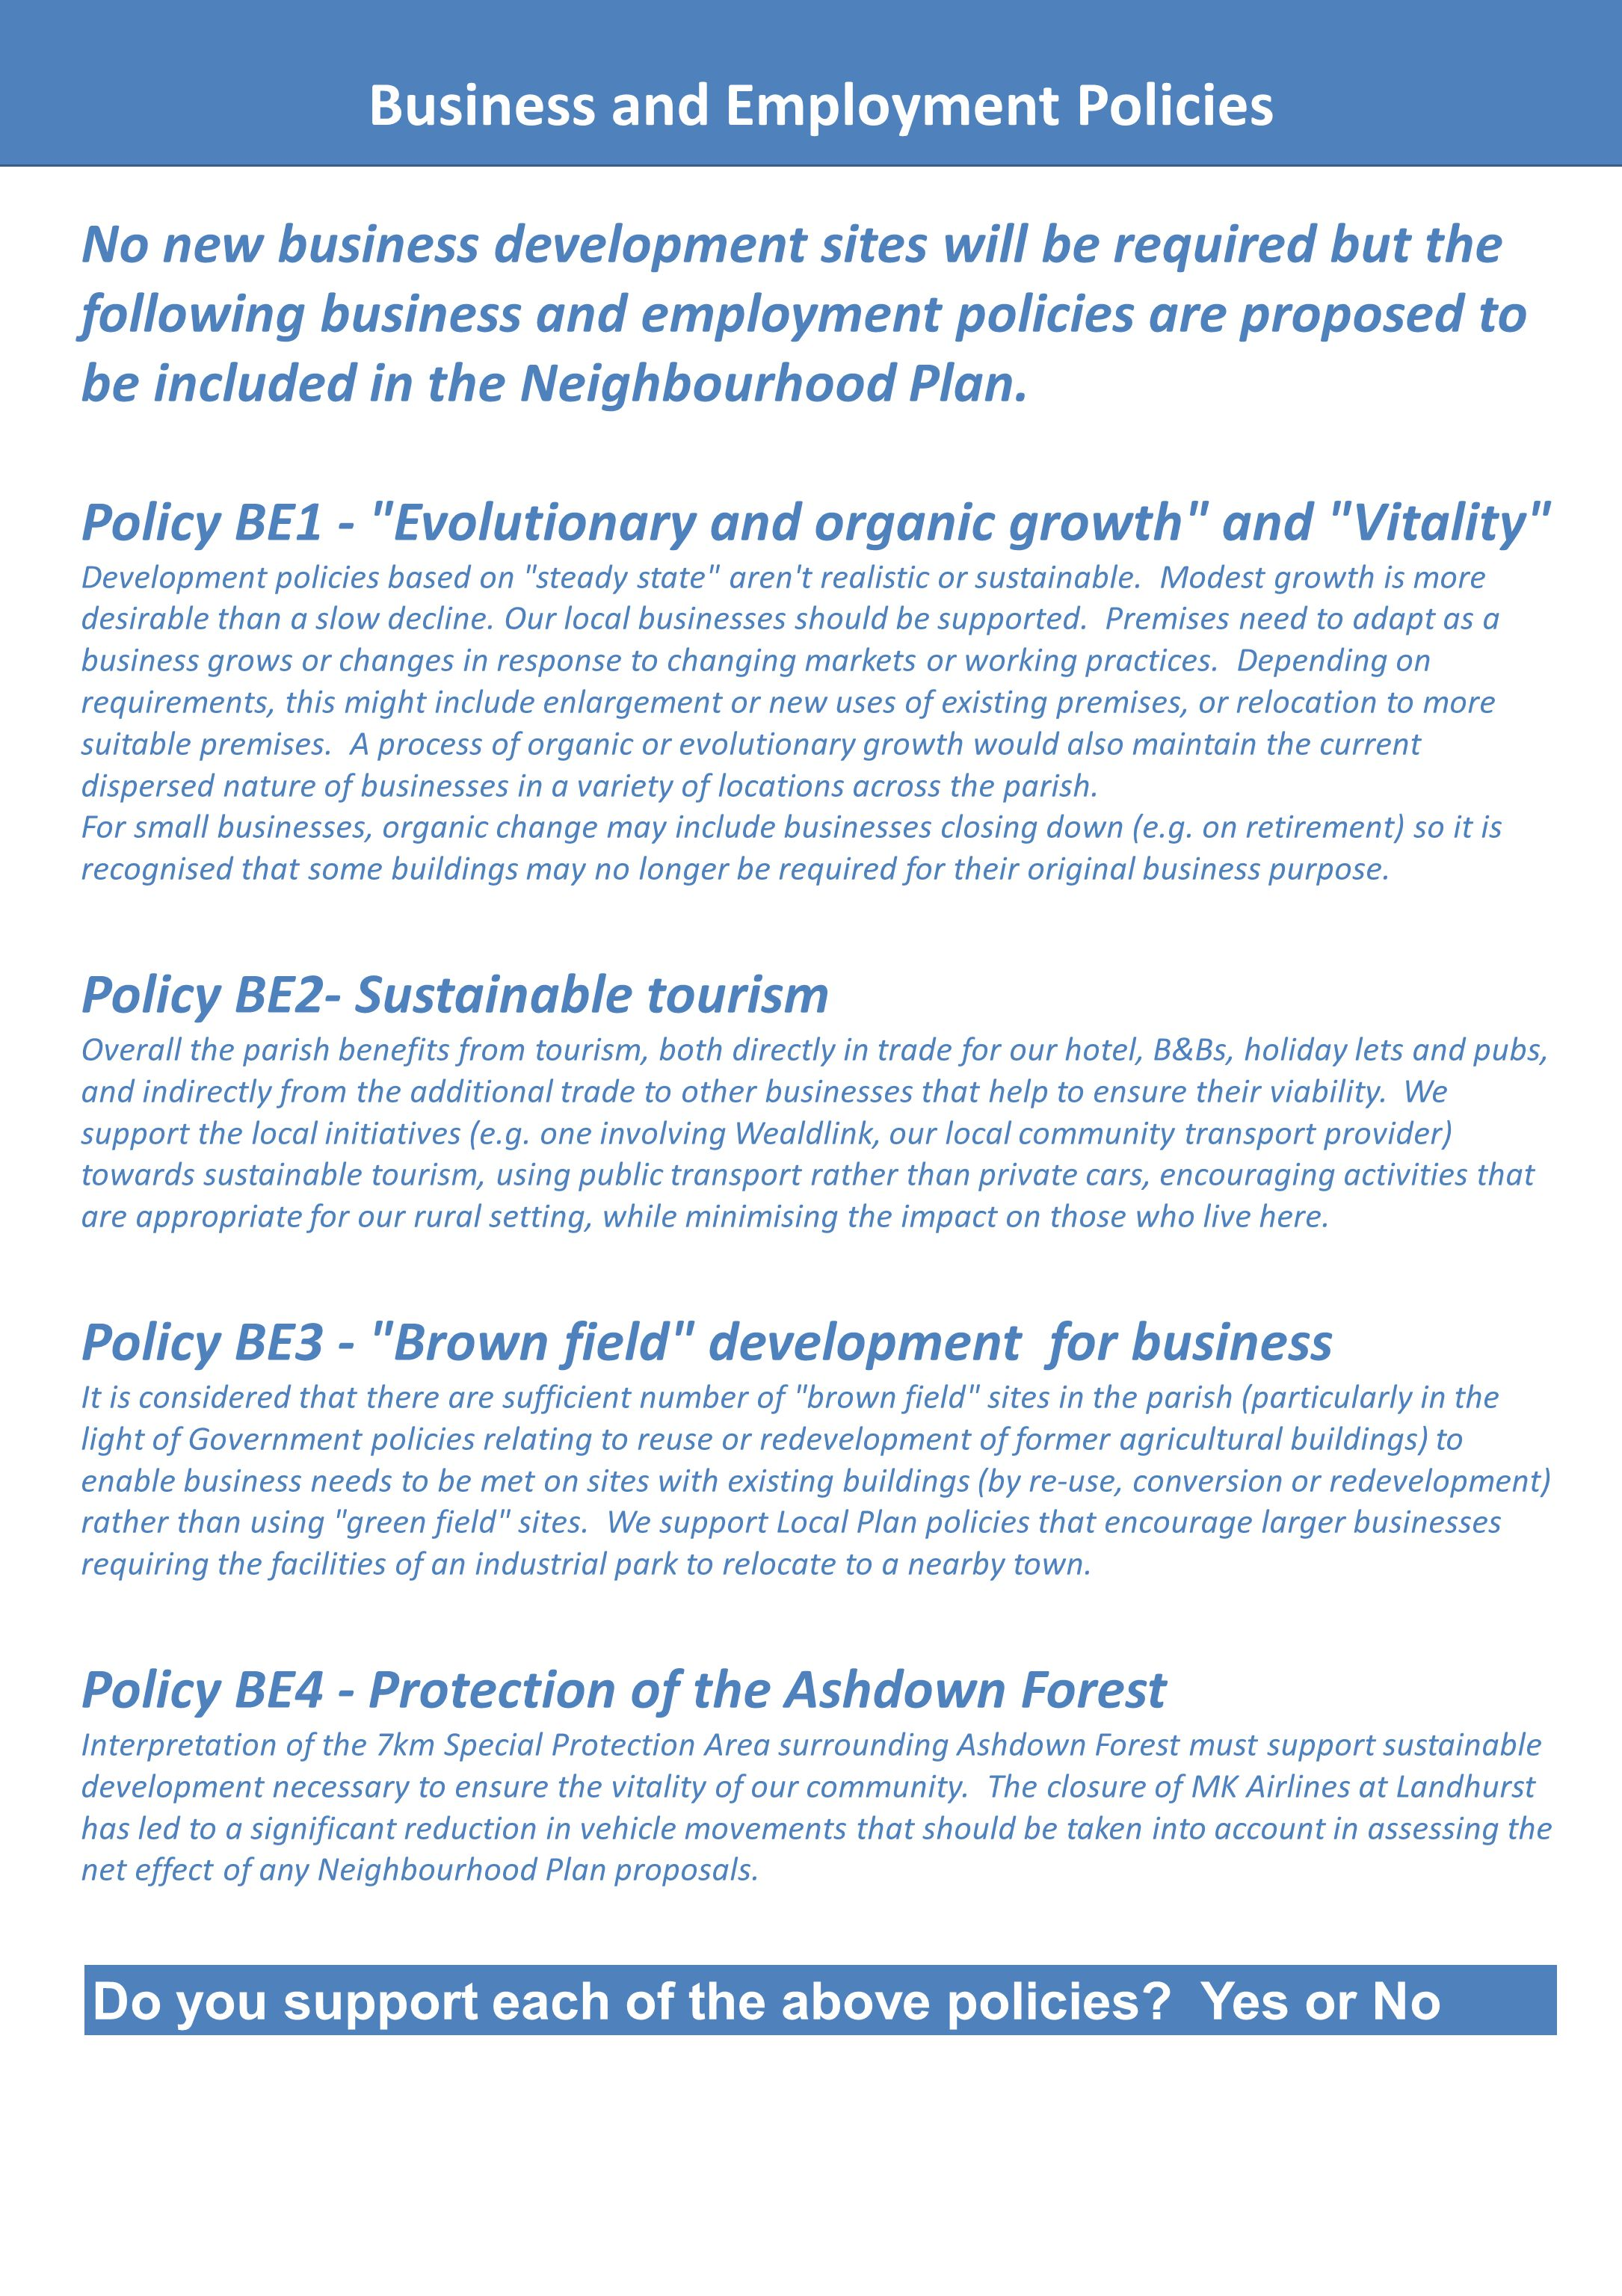 Business and Employment Policies No new business development sites will be required but the following business and employment policies are proposed to be included in the Neighbourhood Plan.